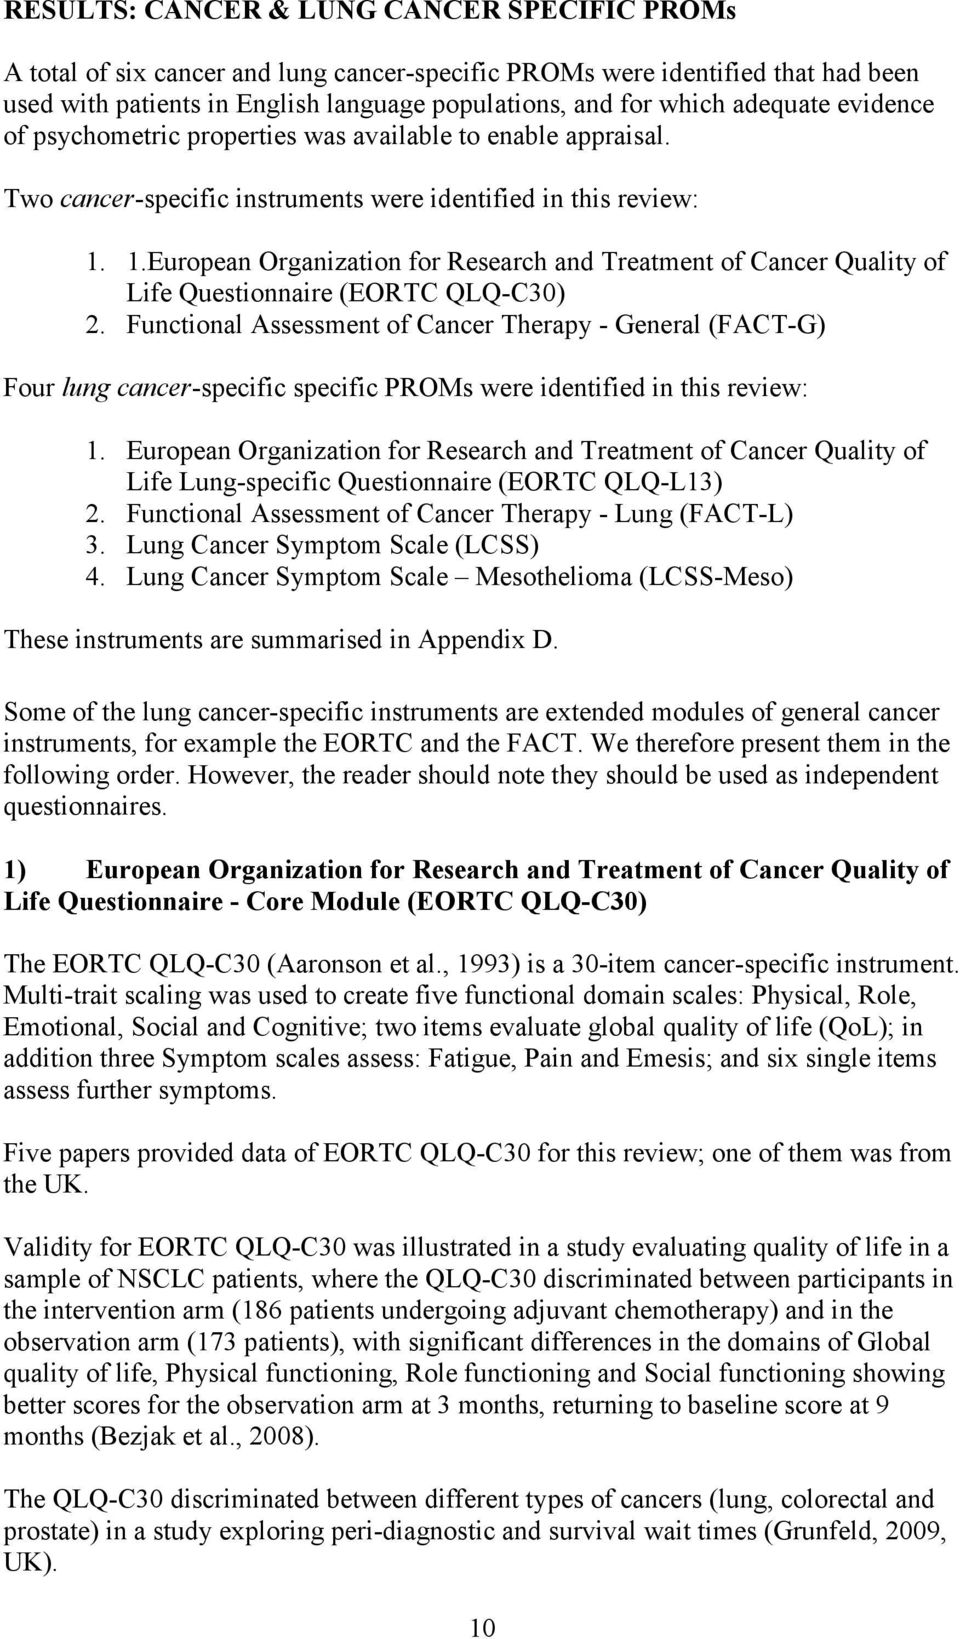 1.European Organization for Research and Treatment of Cancer Quality of Life Questionnaire (EORTC QLQ-C30) 2.